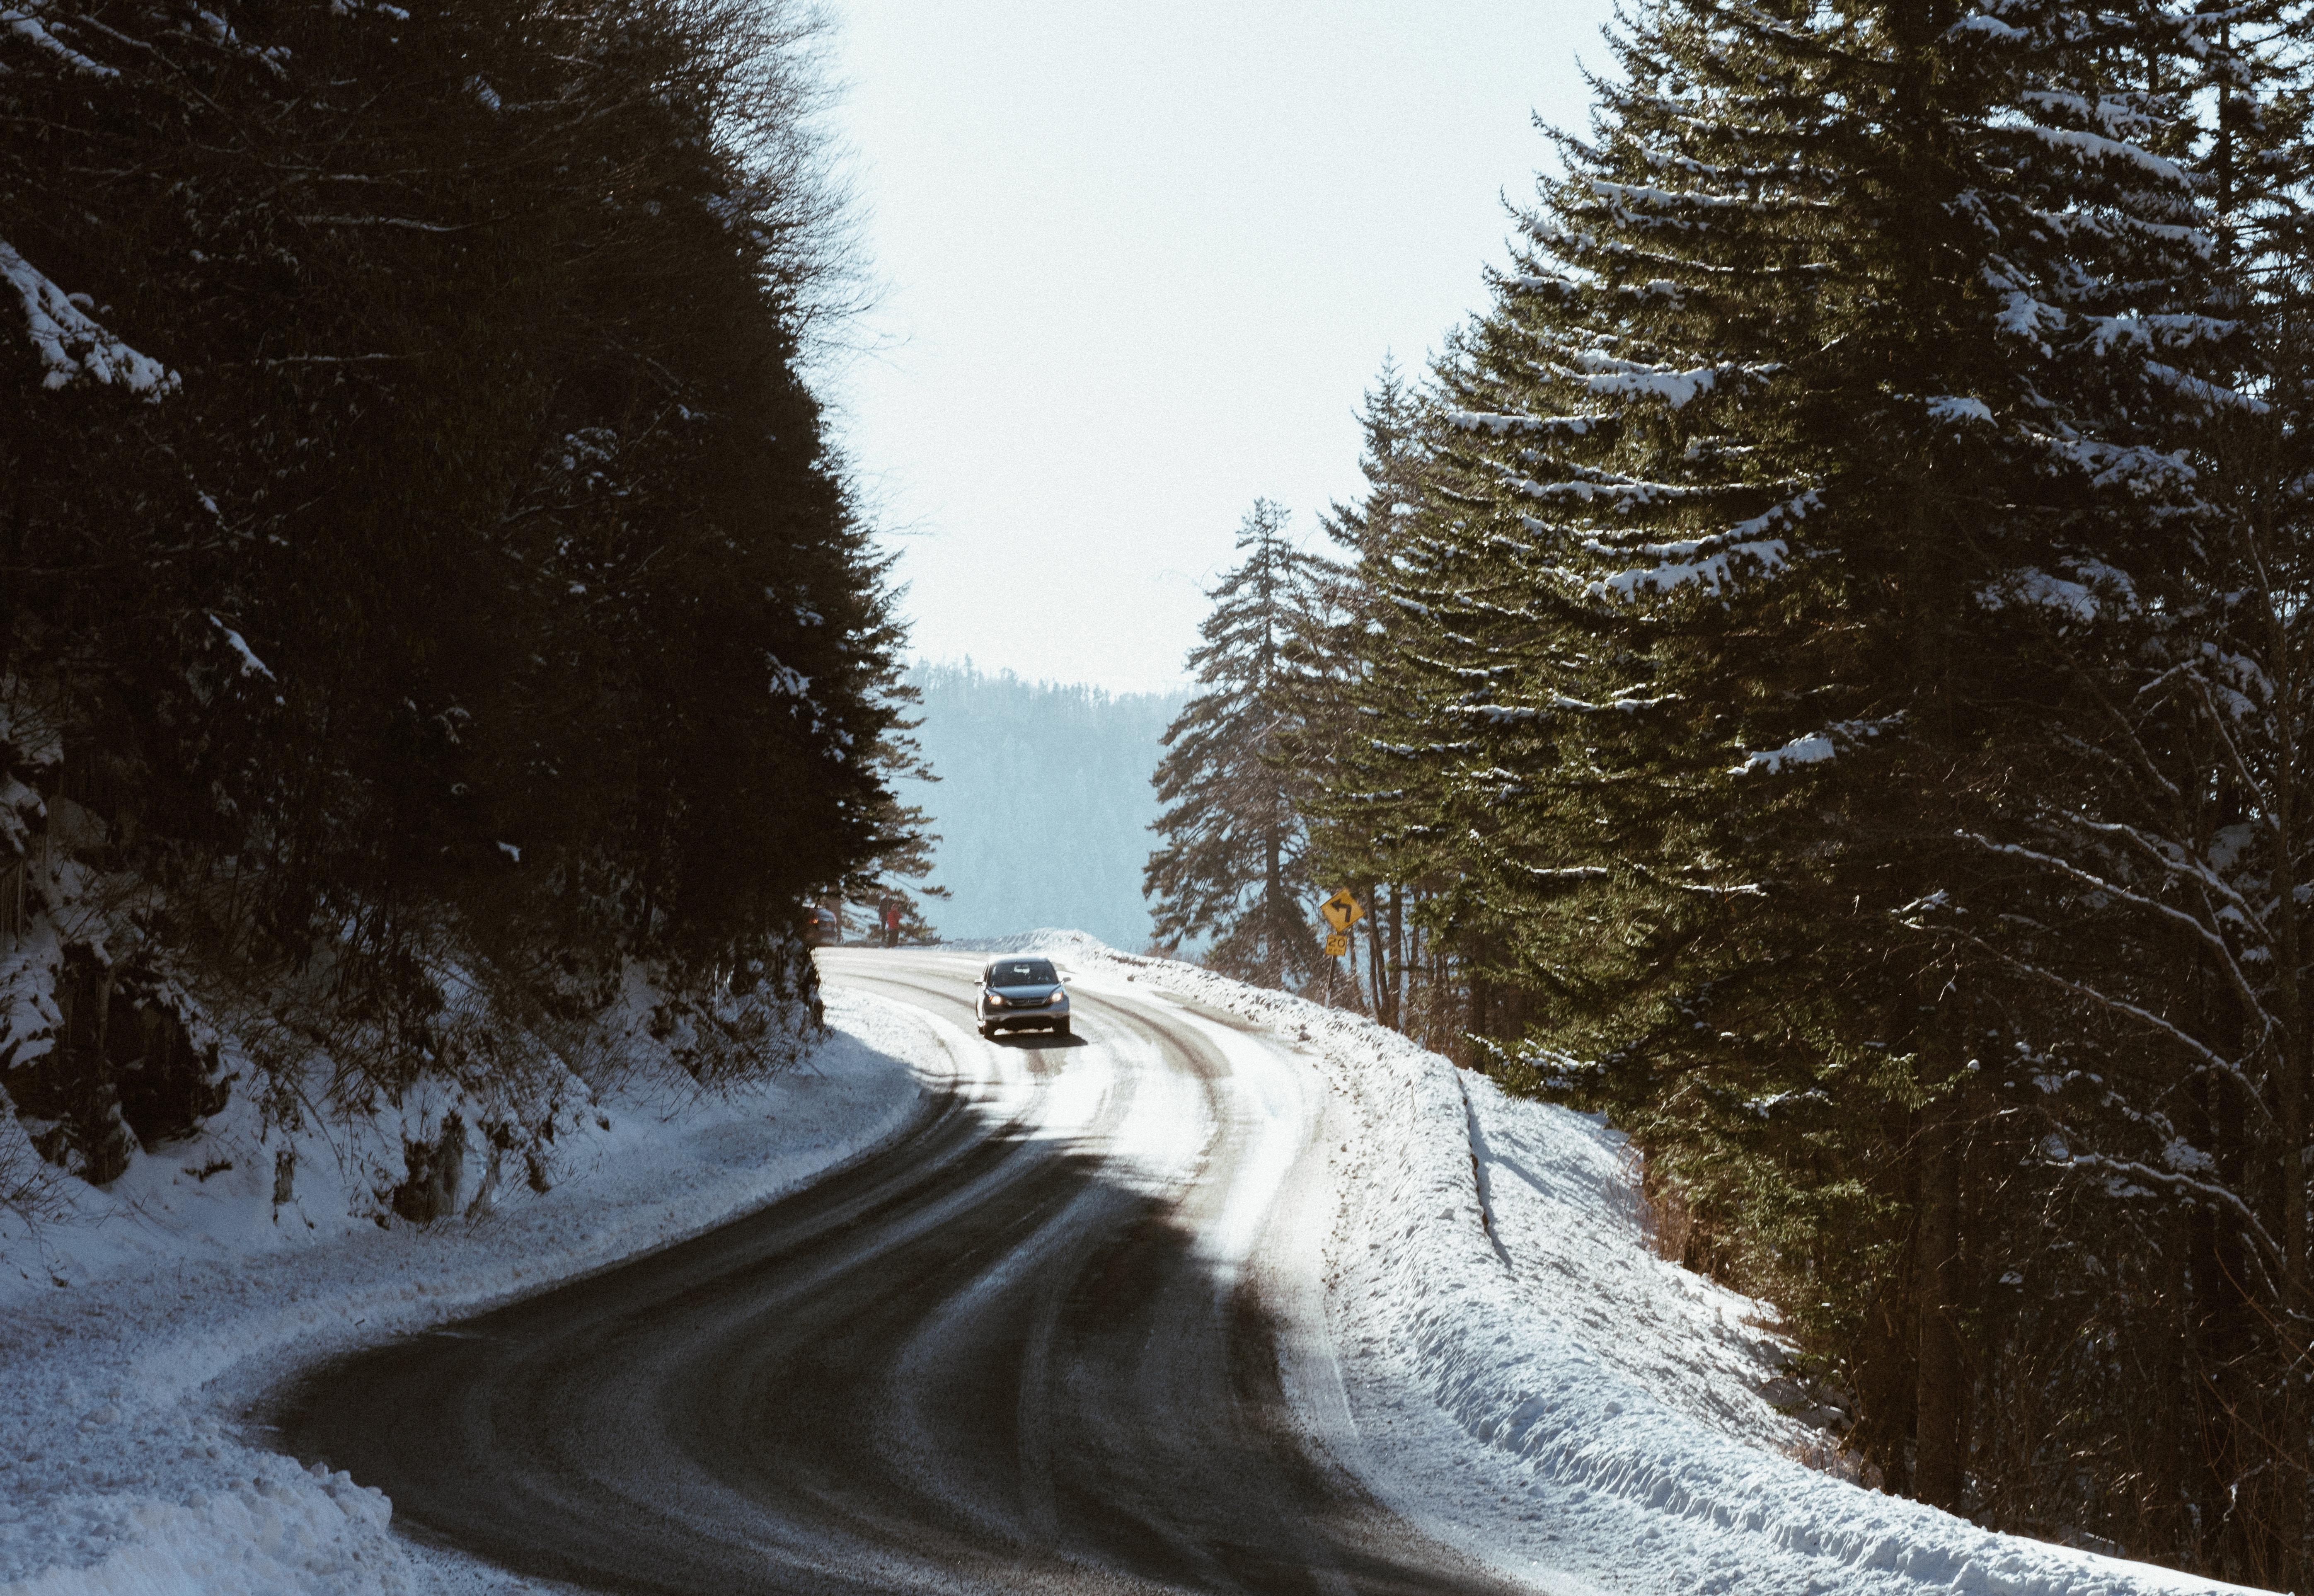 Car on snowy road surrounded by tall trees